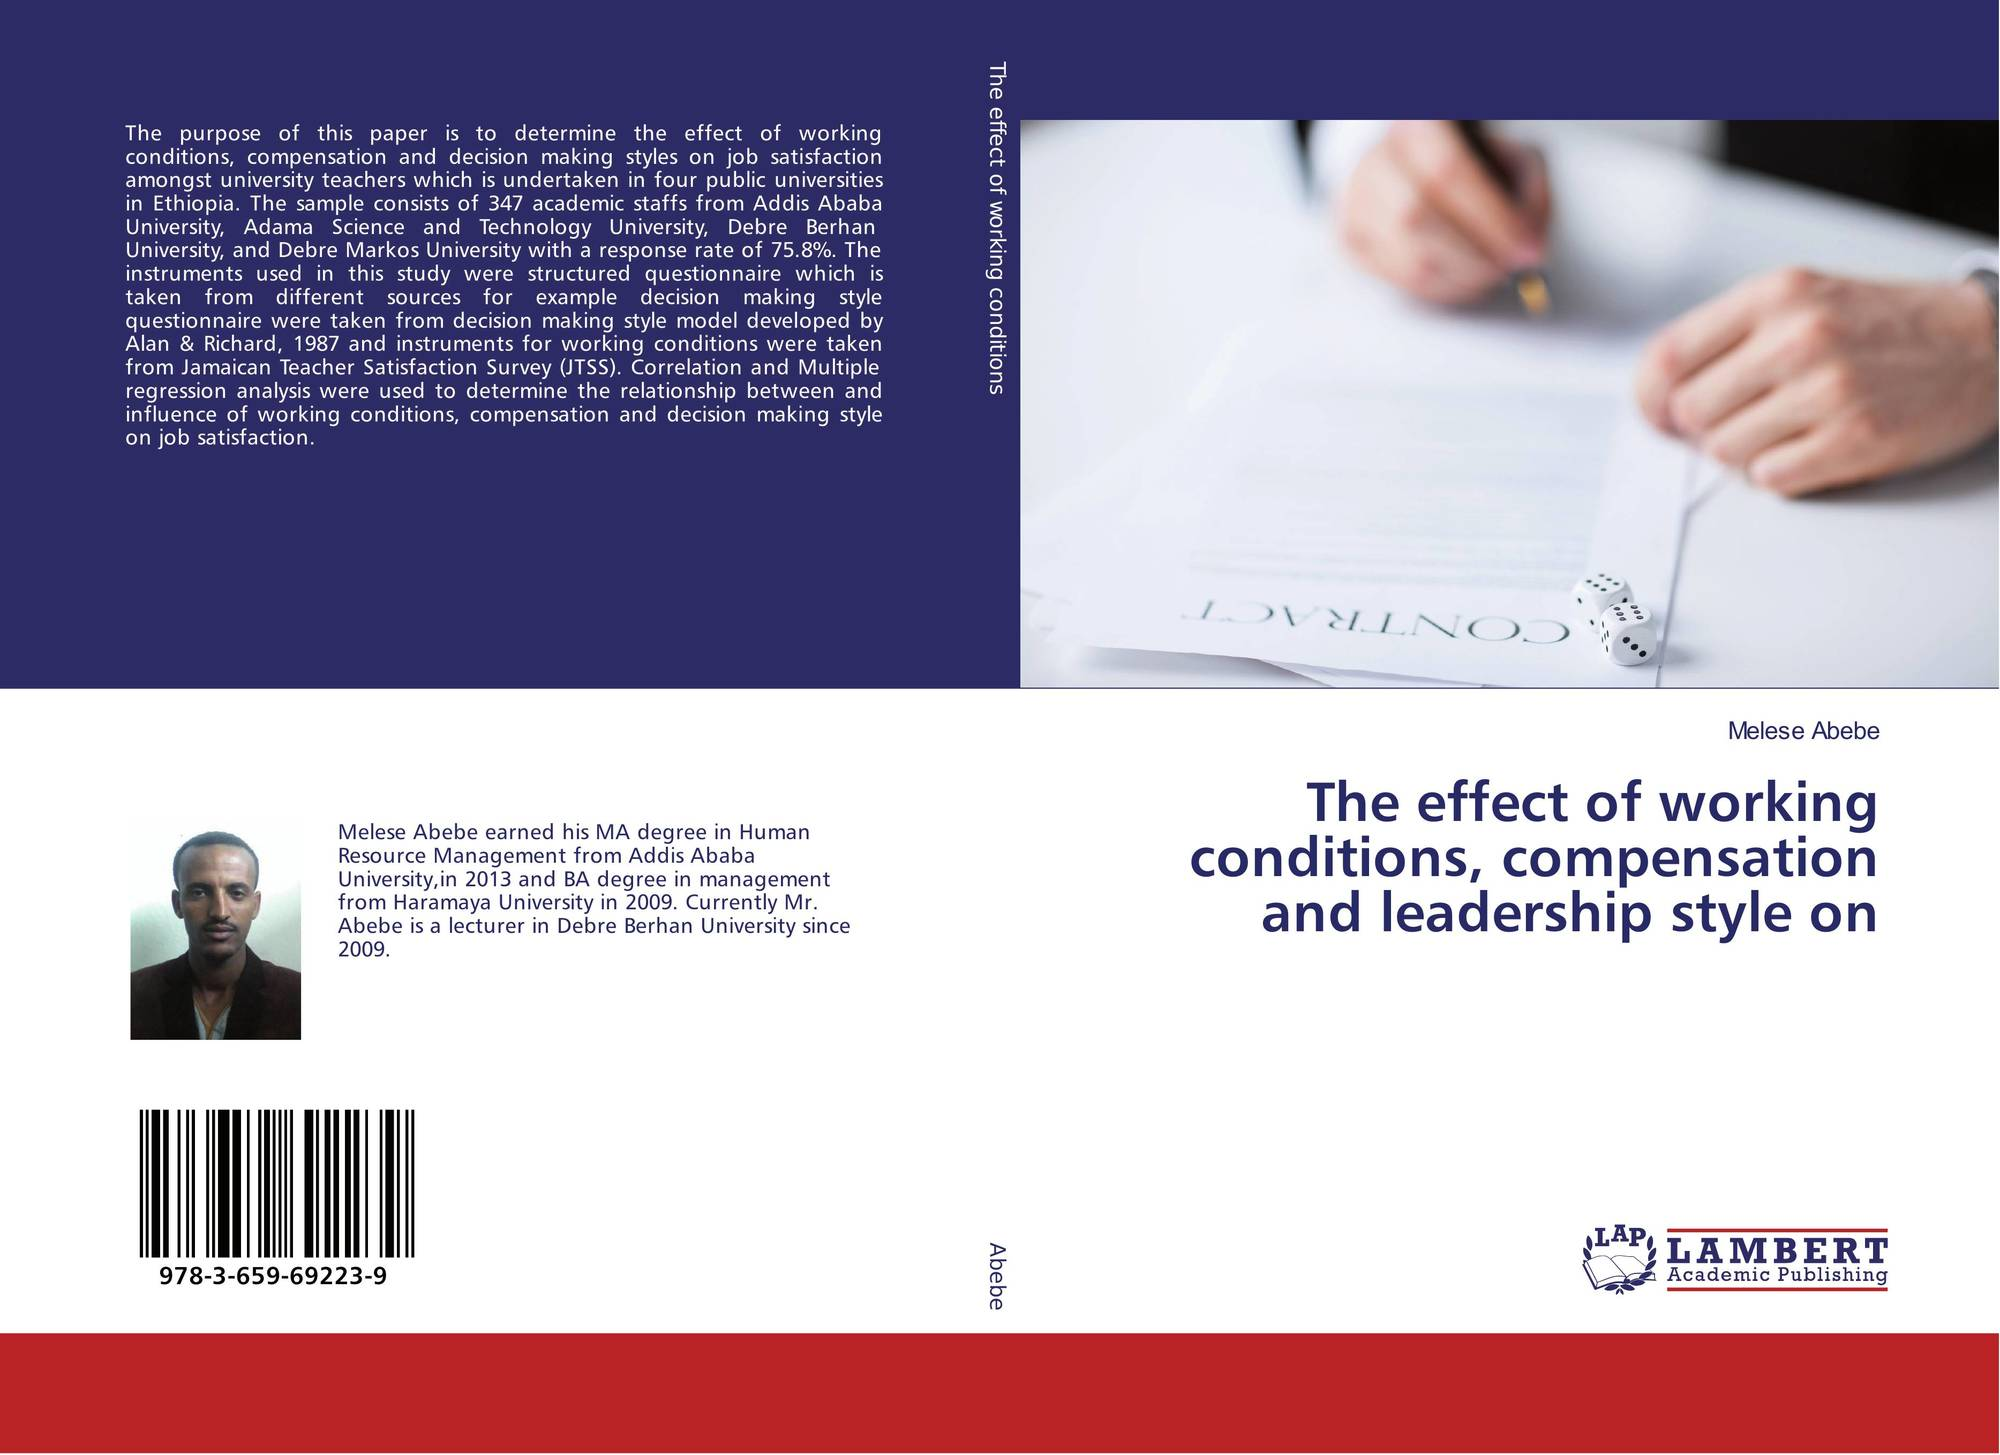 the effect of leadership style on Servant leadership style suggest that it is an important way to move ahead in a world where values are increasingly important, and where servant leaders achieve power on the basis of their values and ideals.